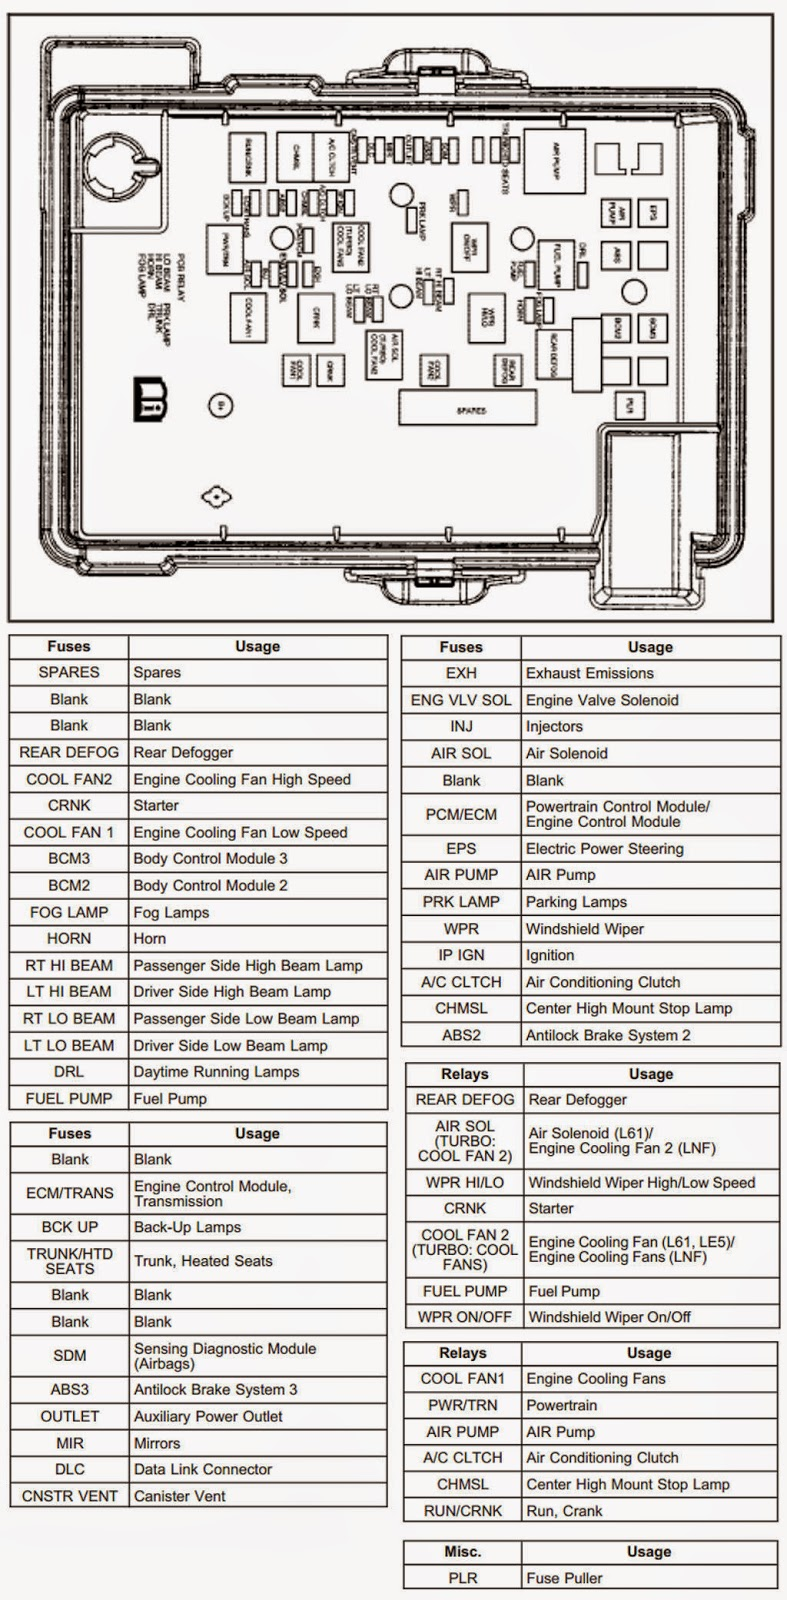 2007 Chevrolet Uplander Engine Diagram | Wiring Diagram